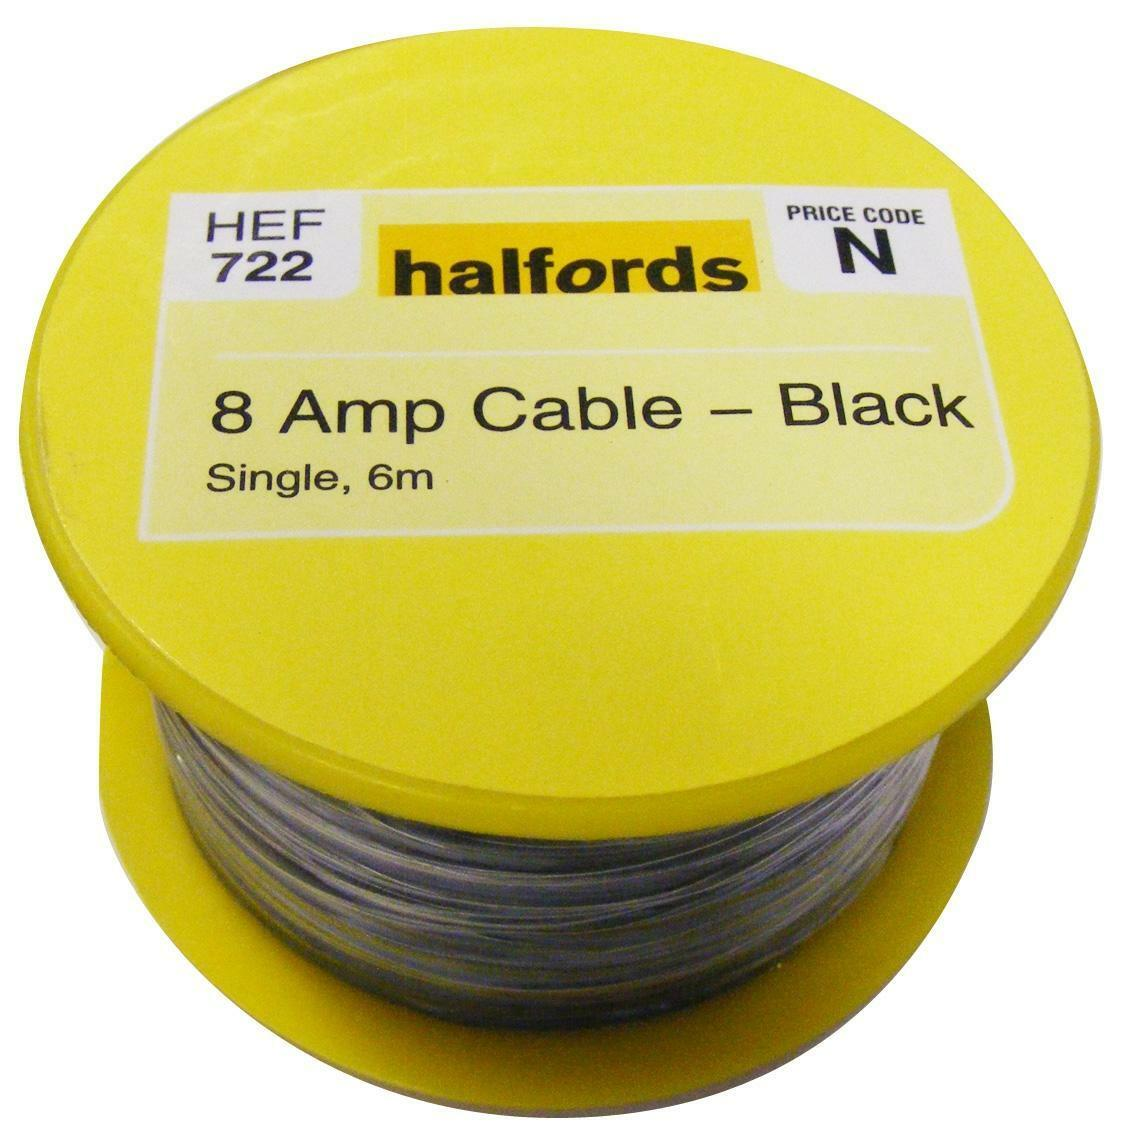 Halfords Hef722 Single Core Cable 8 Amp 12v Black 6m Long 14 Copper Wiring Harness Adapter Norton Secured Powered By Verisign